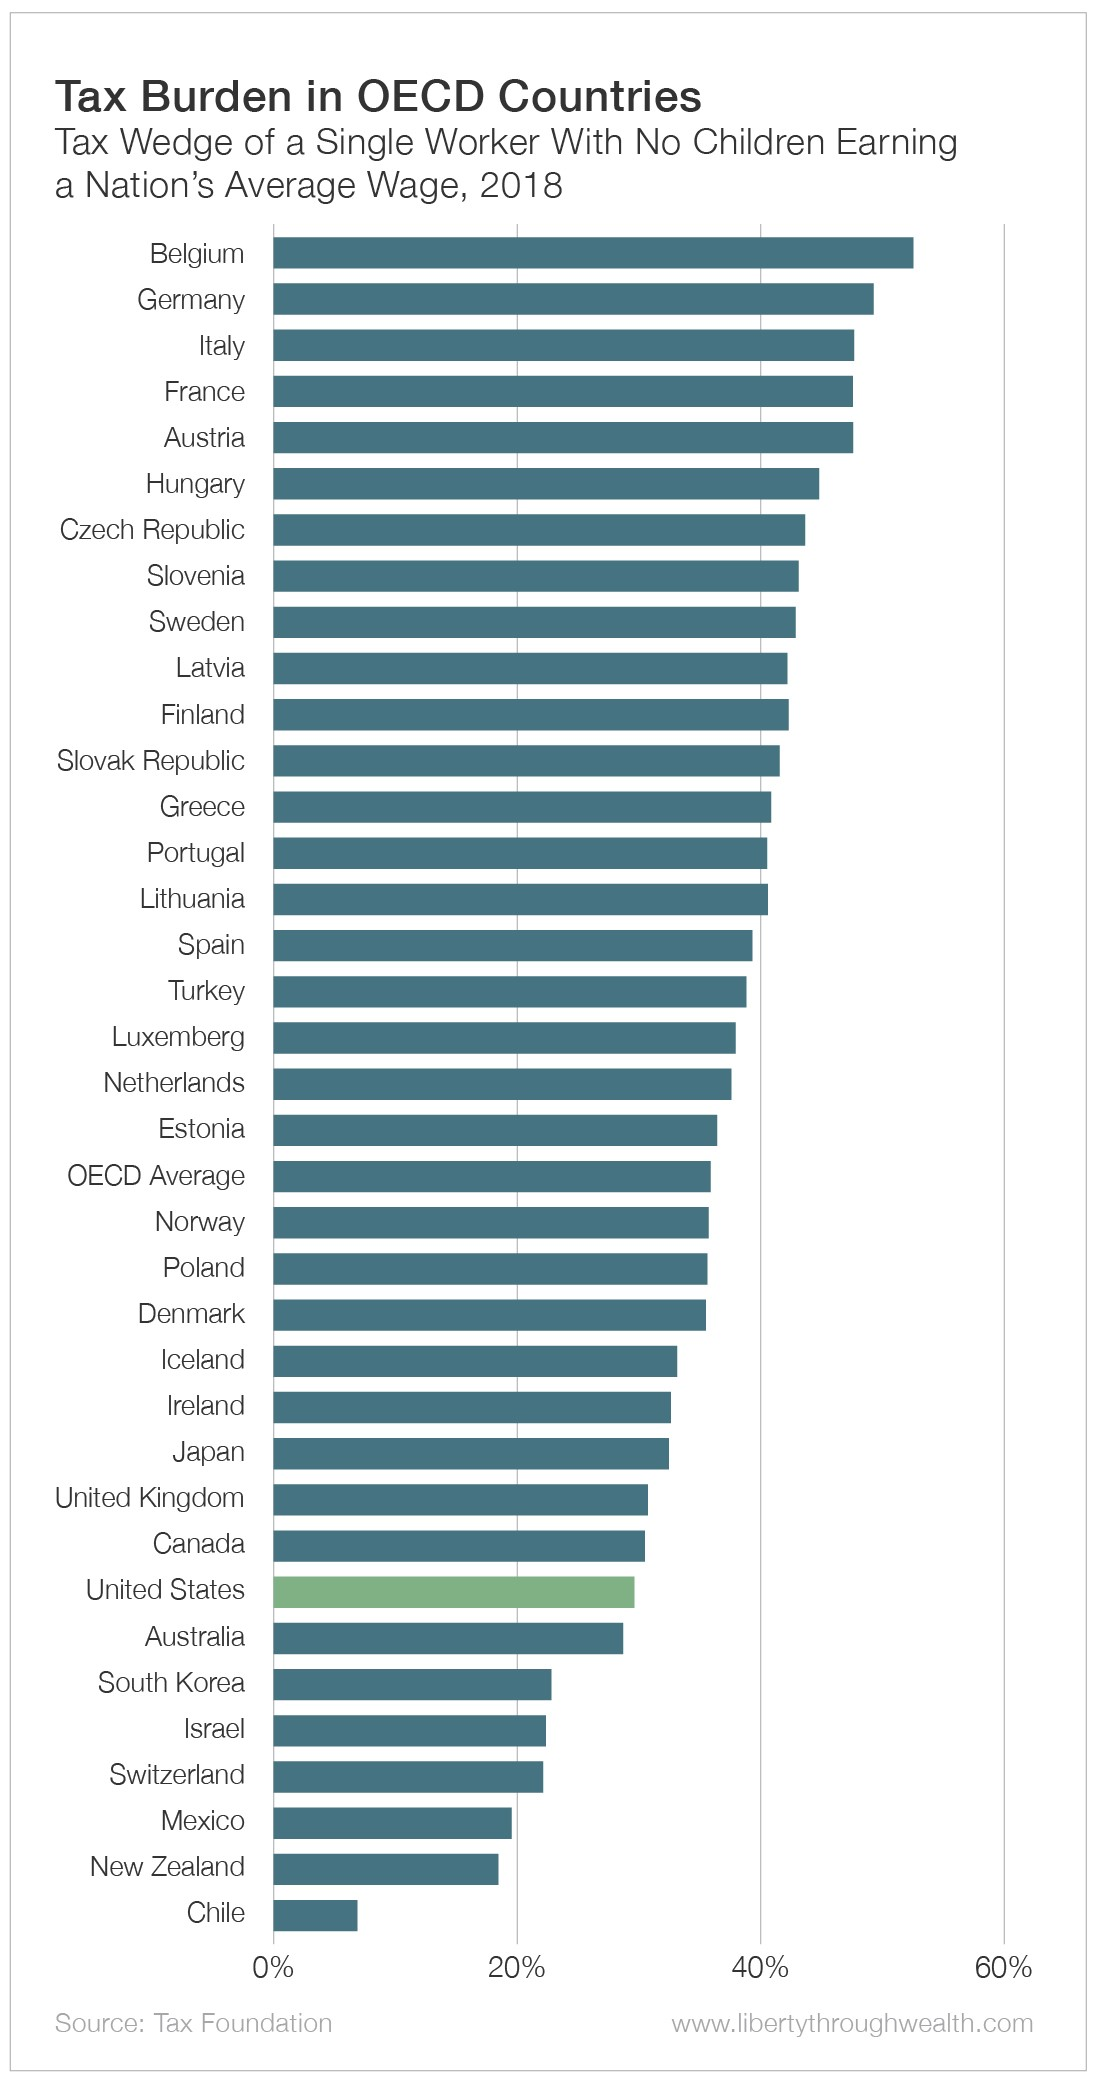 Tax Burden in OECD Countries